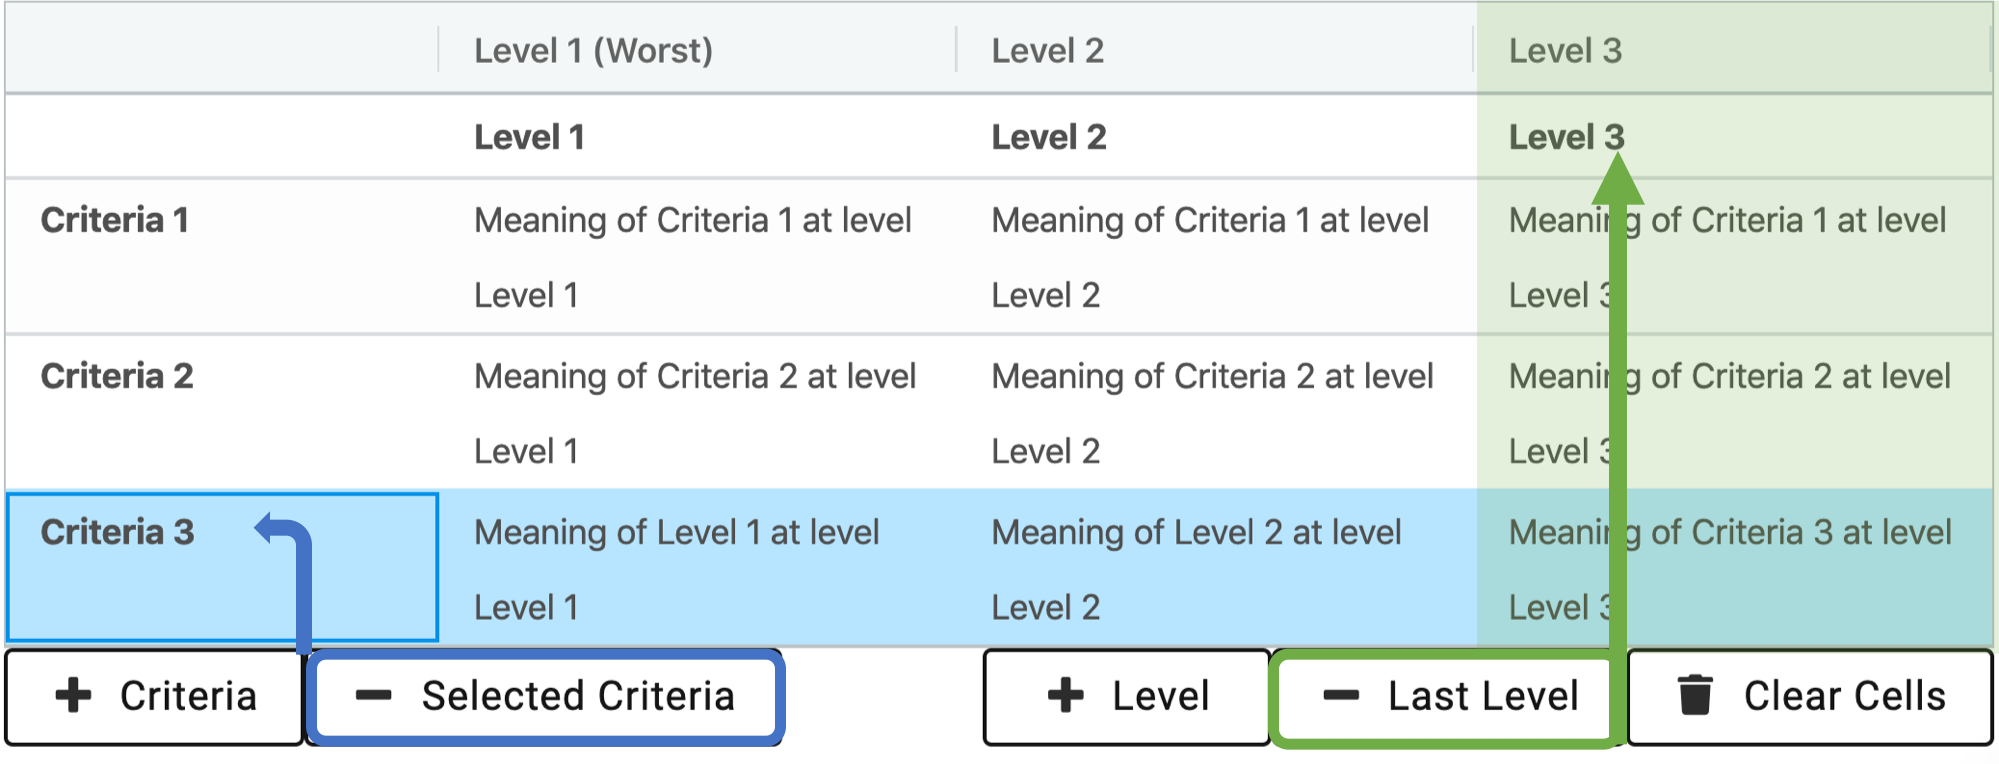 Rubric Levels and Criteria